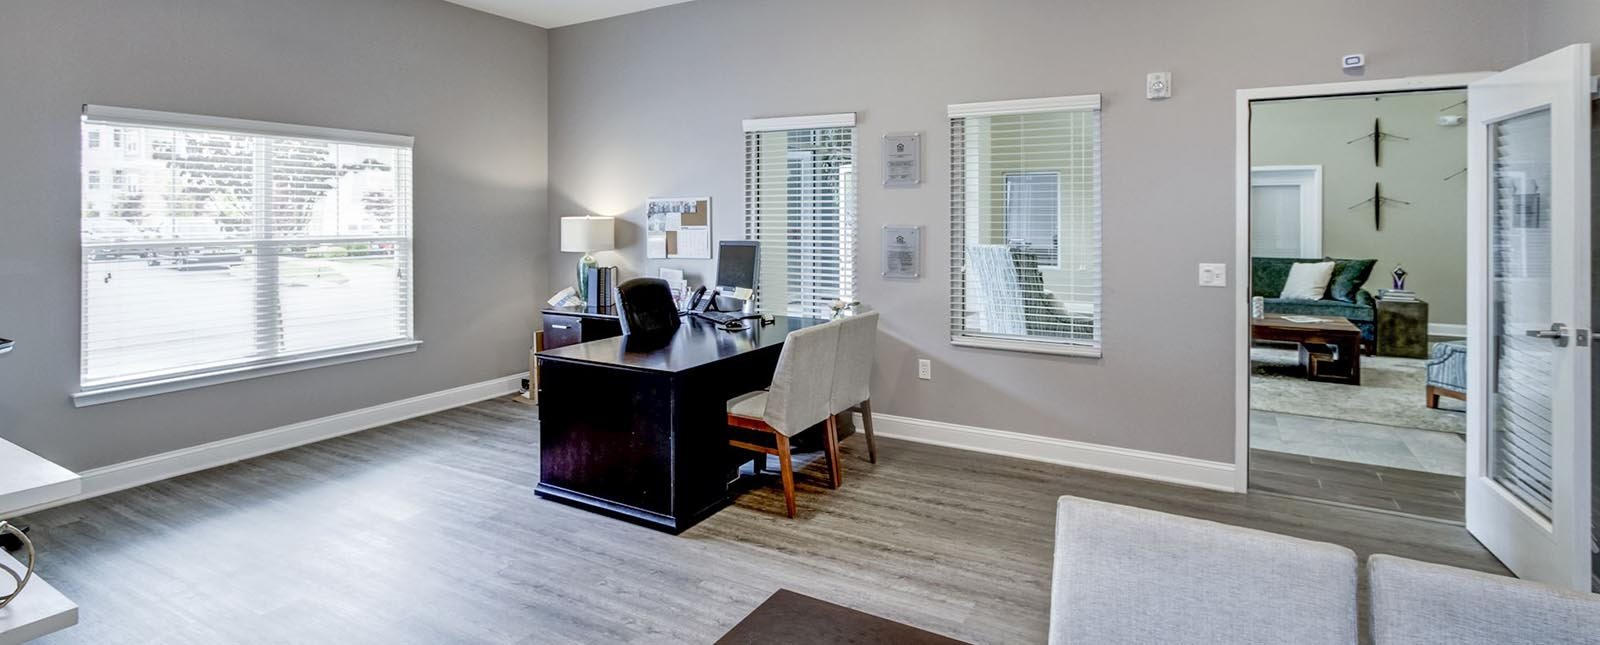 Professional Management Office of The Haven luxury apartments in Malvern, PA